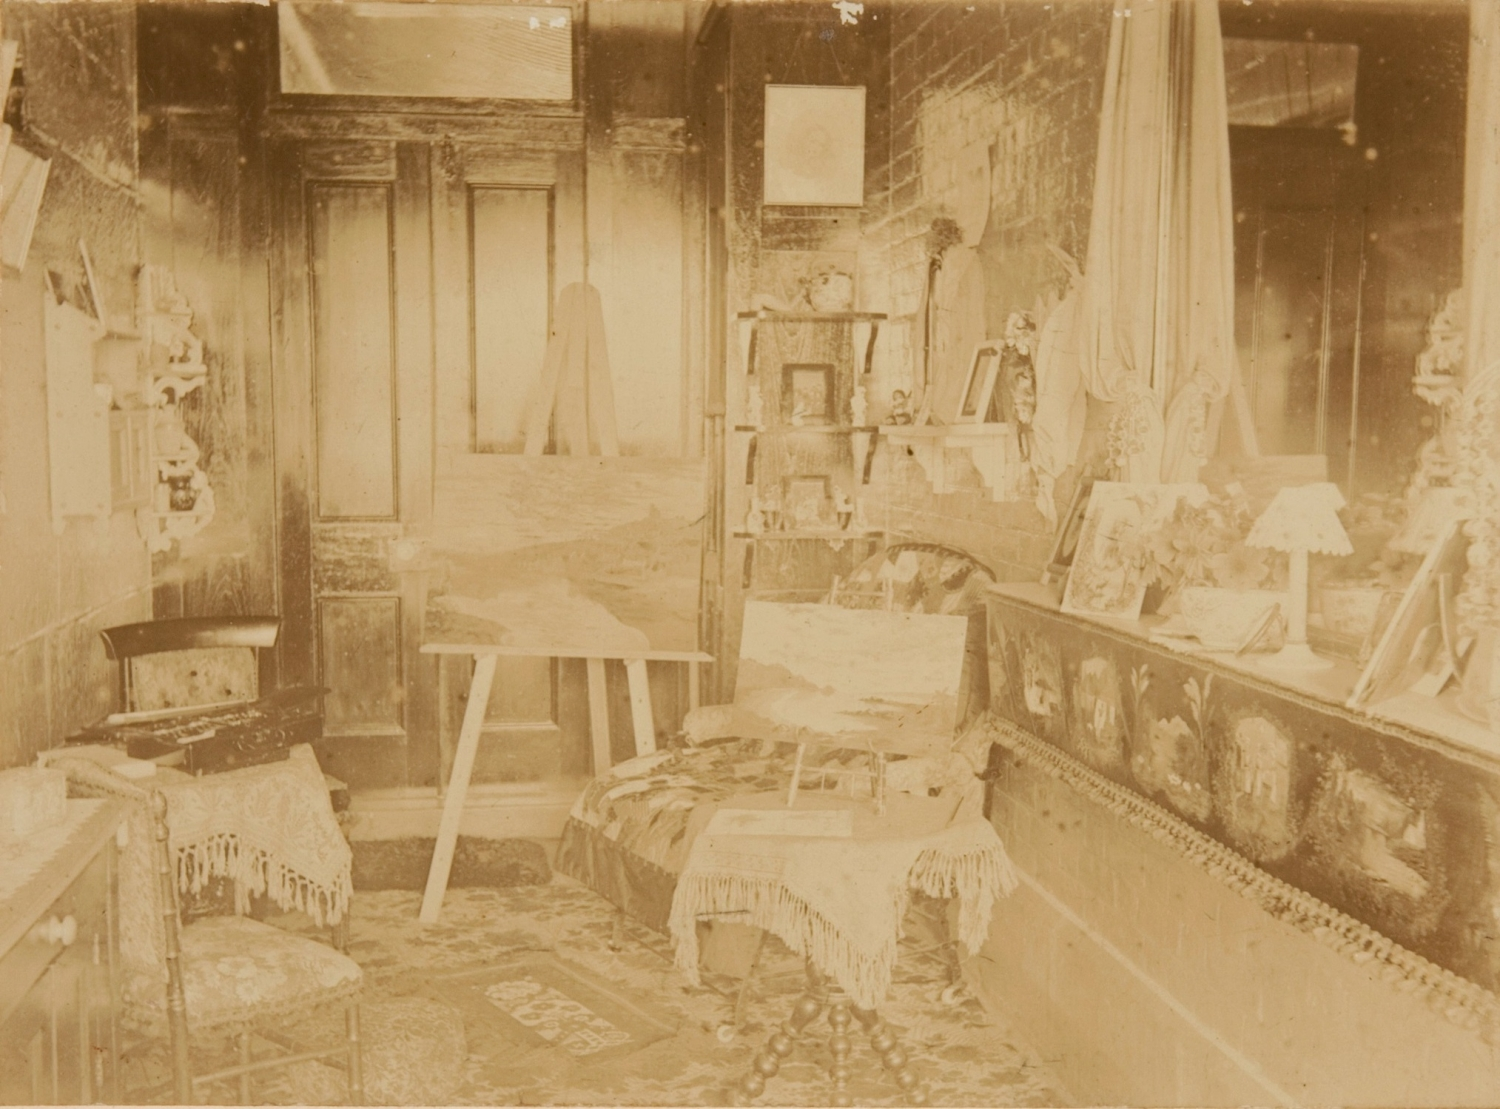 Slightly faded old photo of interior of art studio.